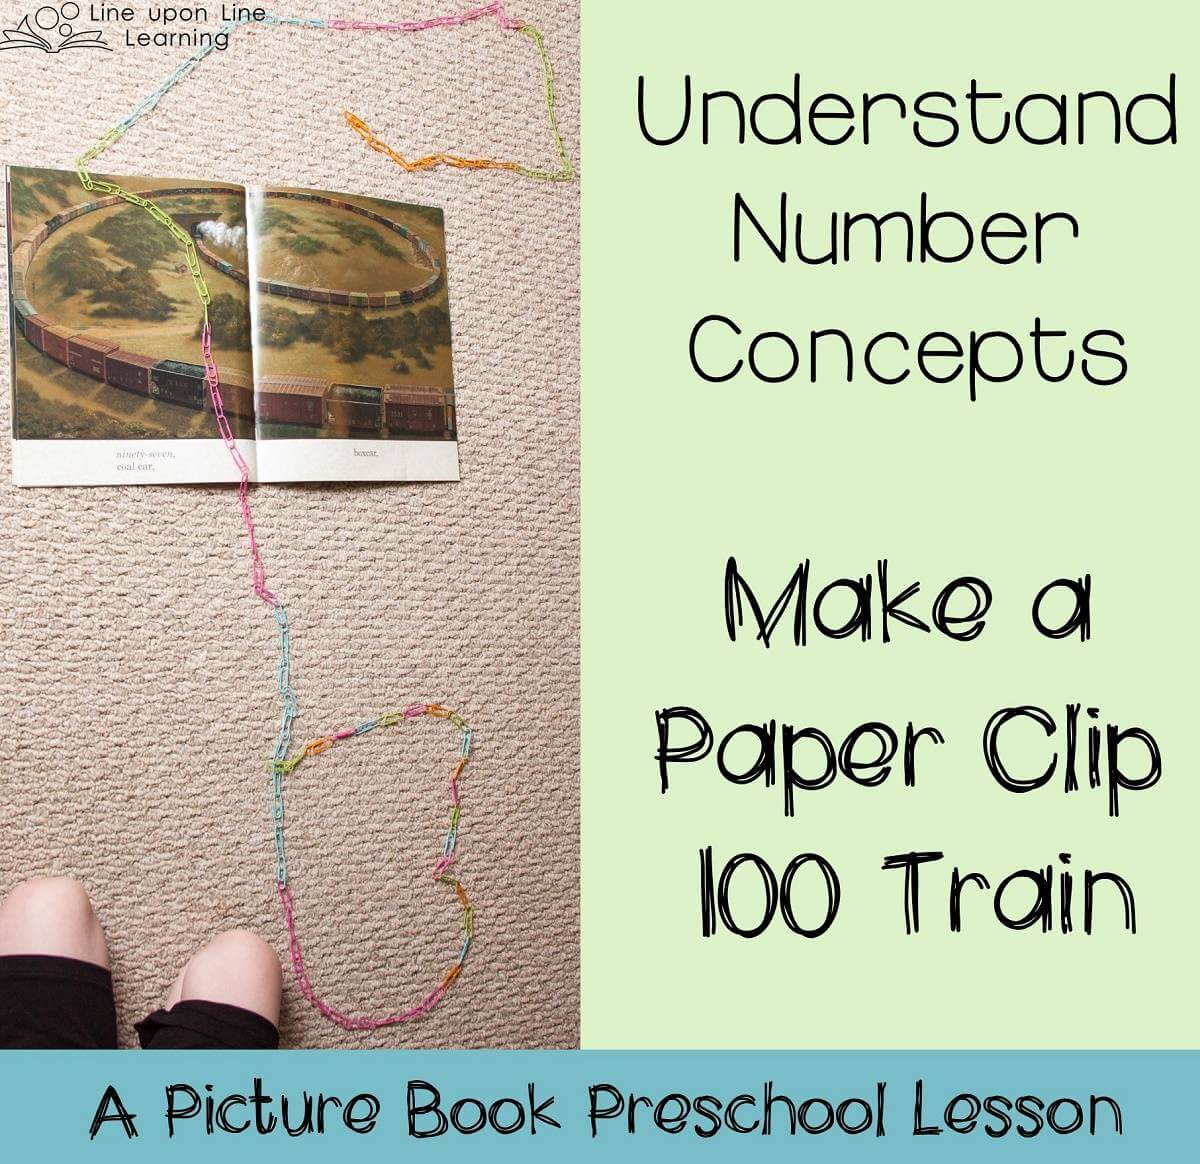 My daughter's favorite part of our paper clip 100 train activity was then playing with the train when we were done counting!